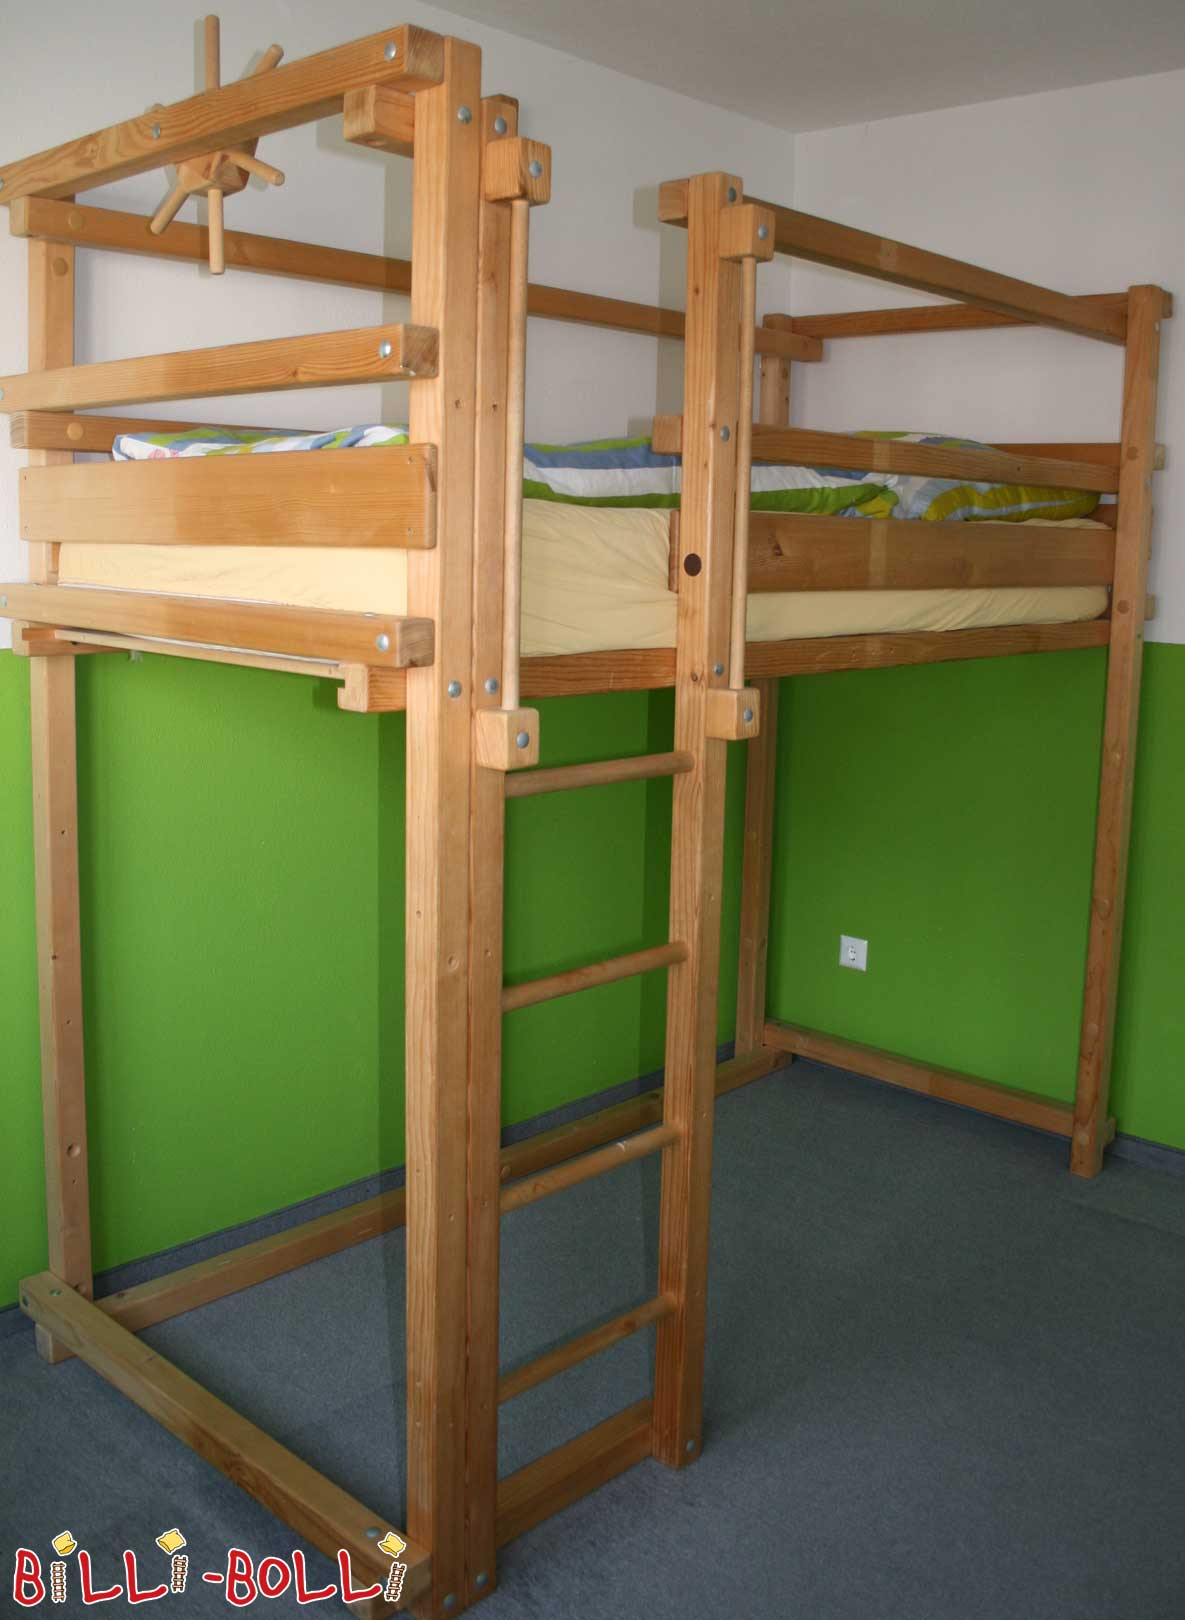 Growing bunk bed, 90 x 200 cm, spruce untreated (second hand loft bed)